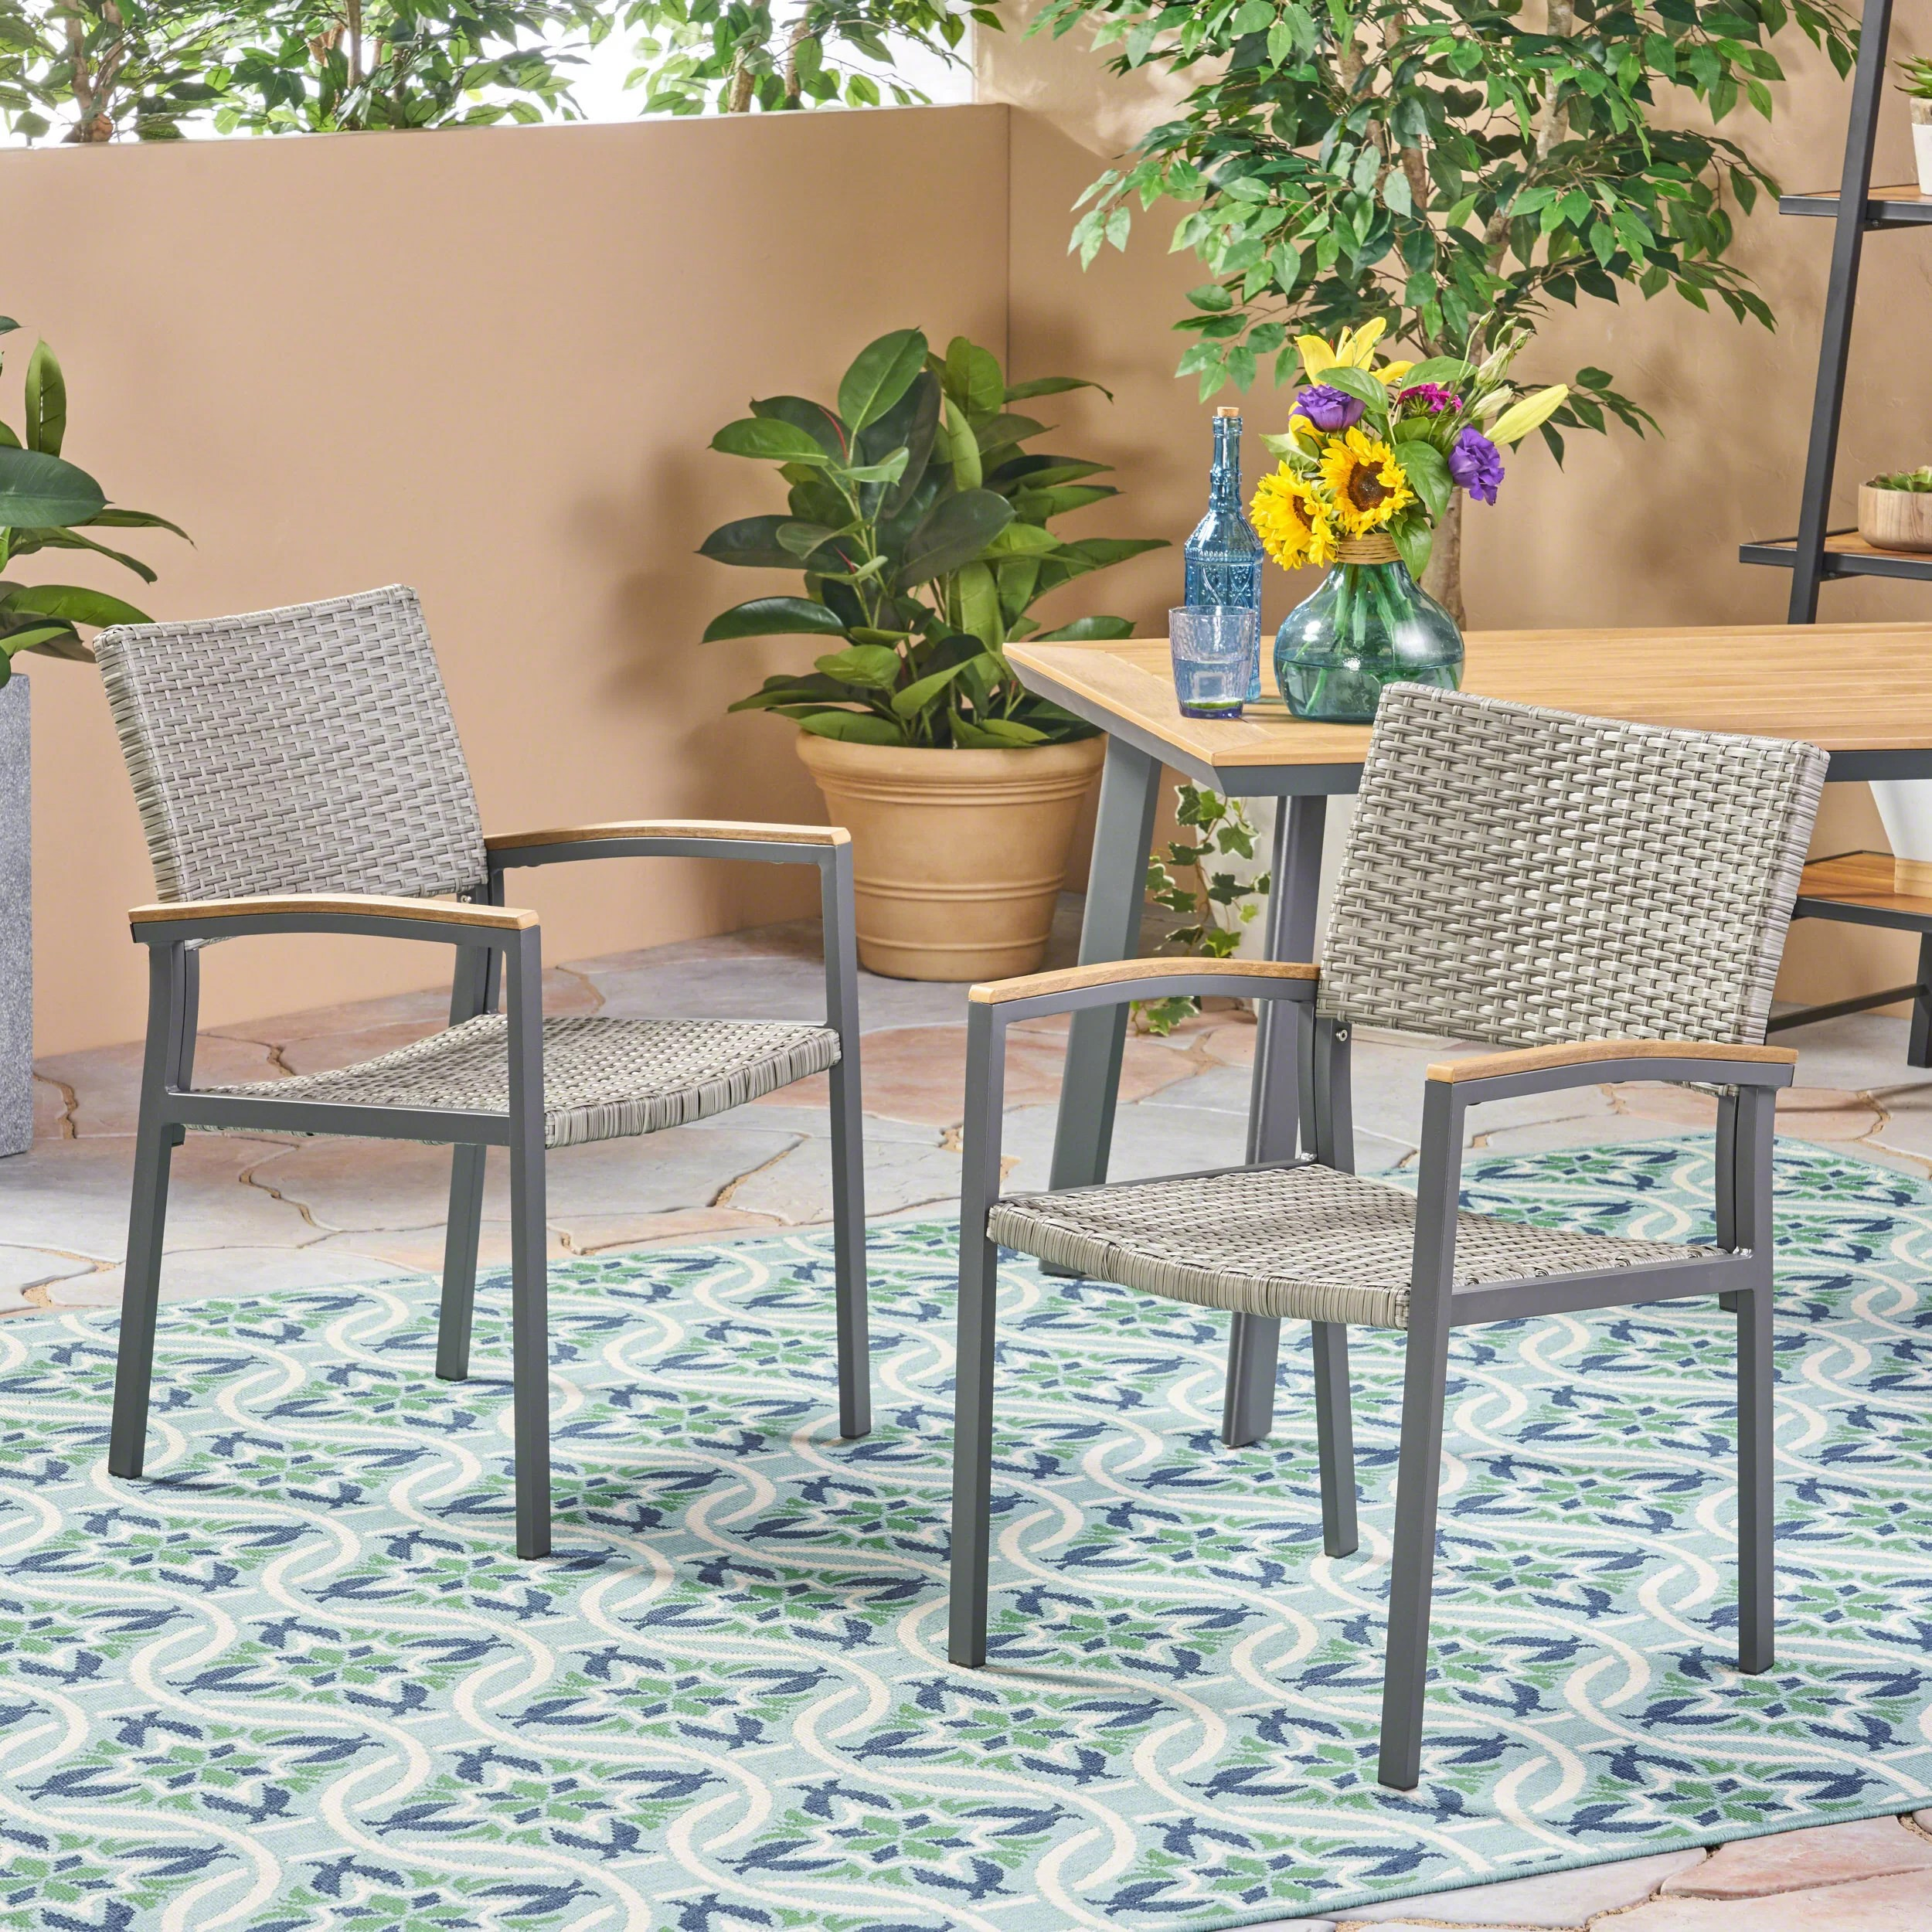 boone outdoor wicker patio dining chair